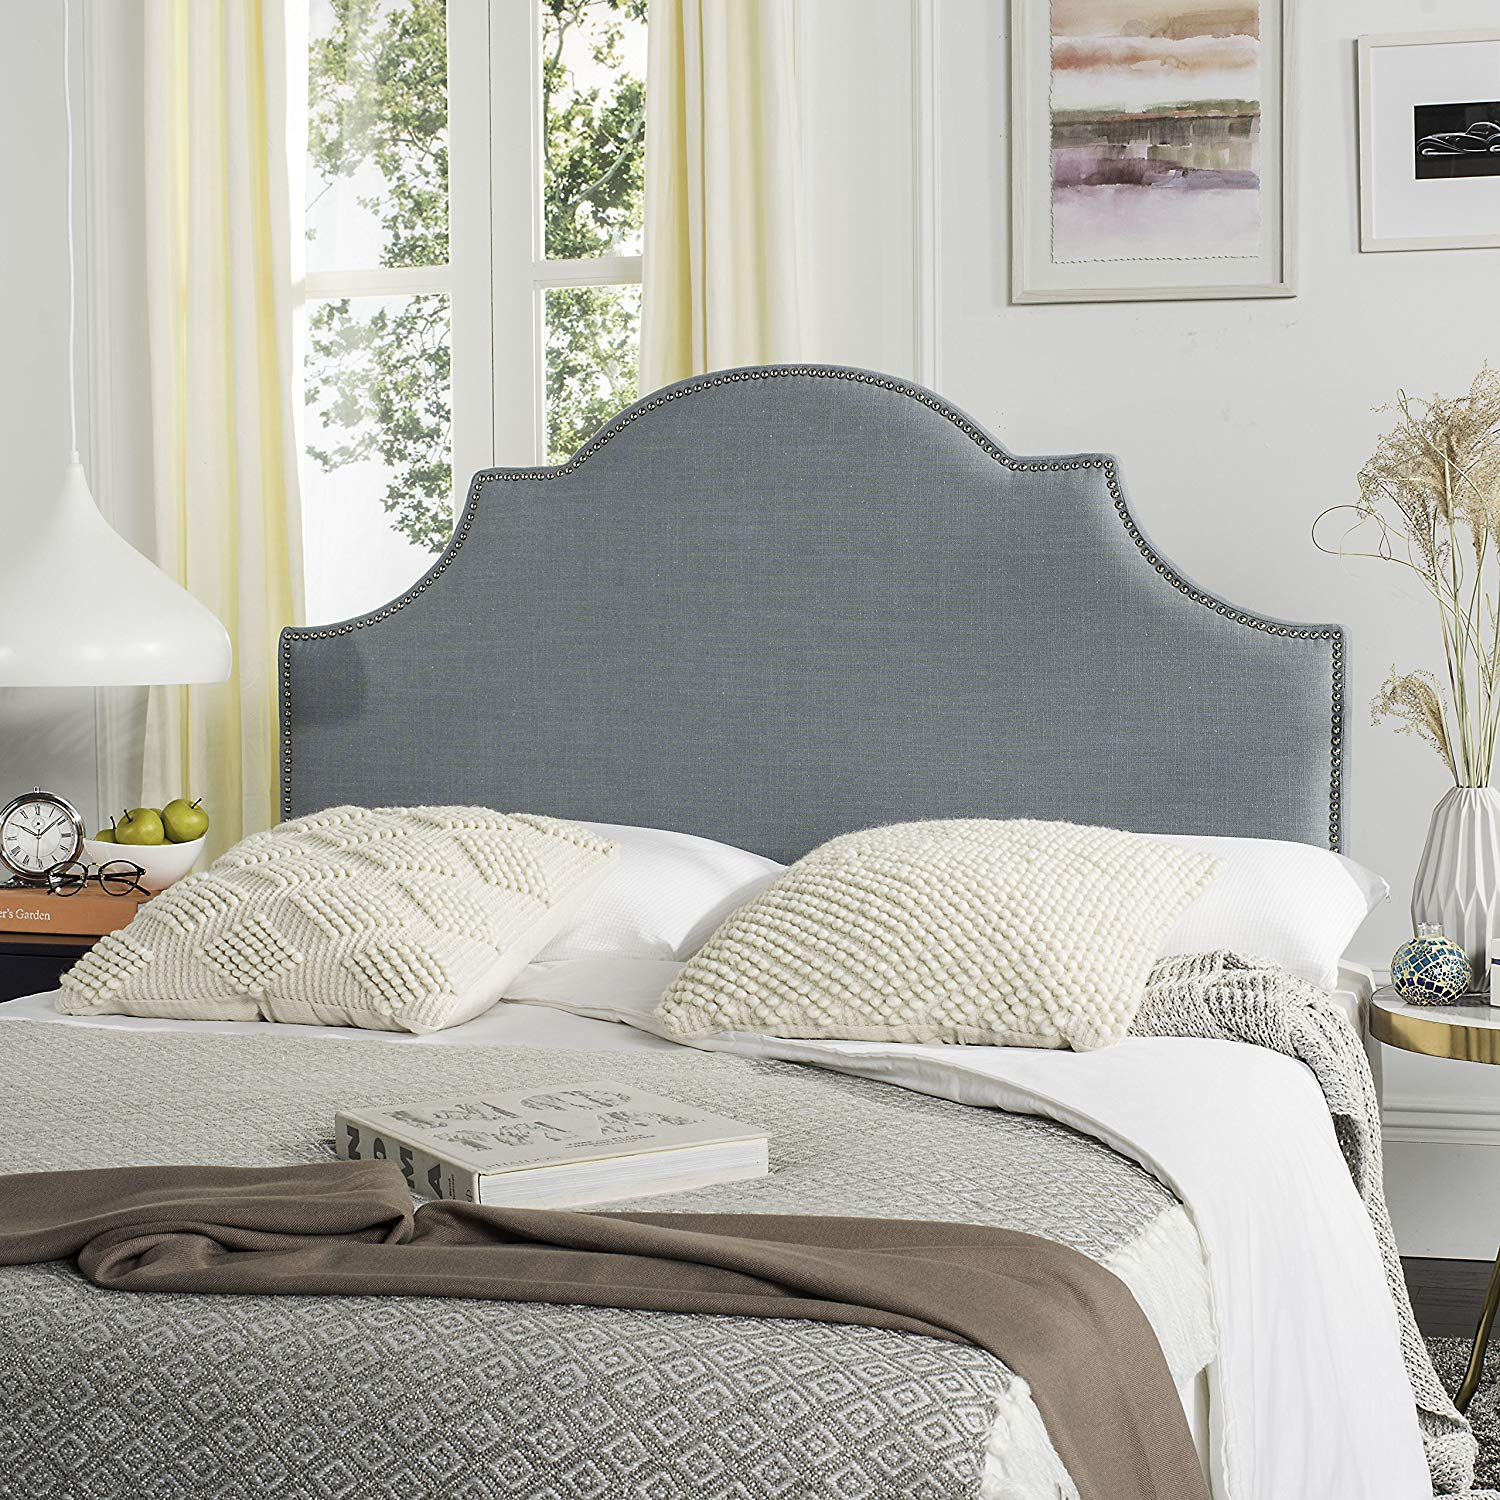 Safavieh Hallmar Sky Blue Arched Headboard Queen